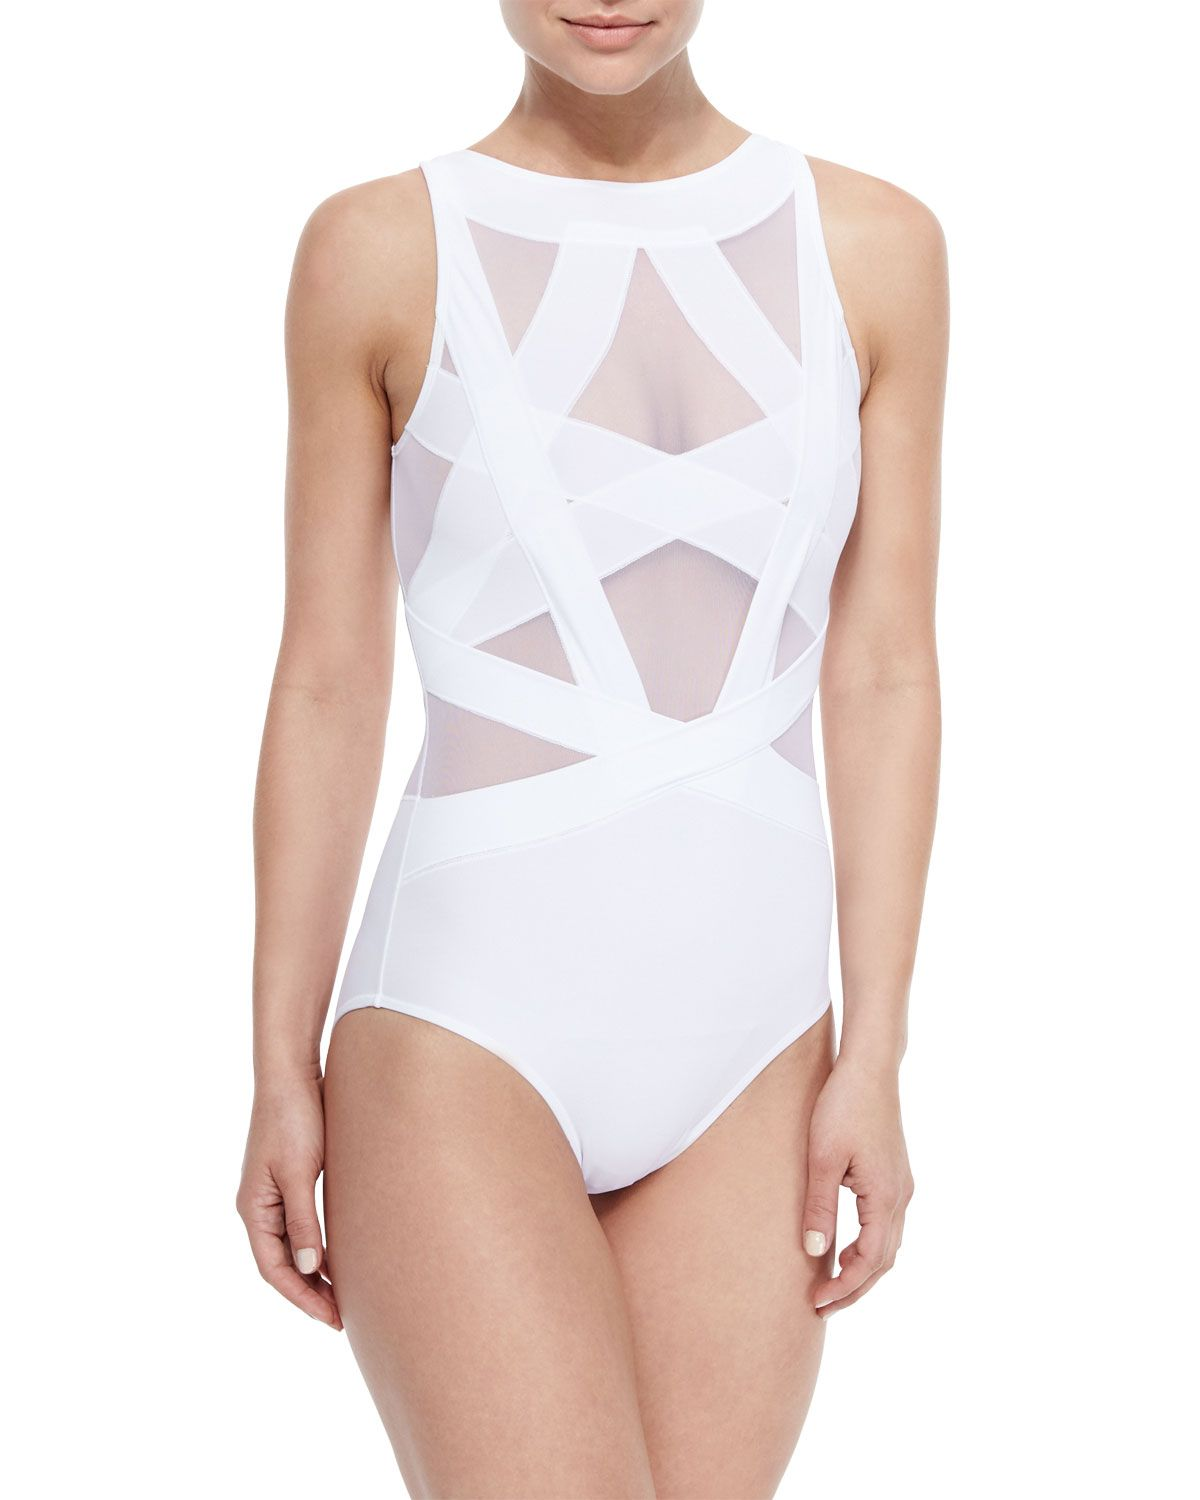 133643b032 Esther Strappy Mesh One-Piece Swimsuit, White, Women's, Size: XS - OYE  Swimwear